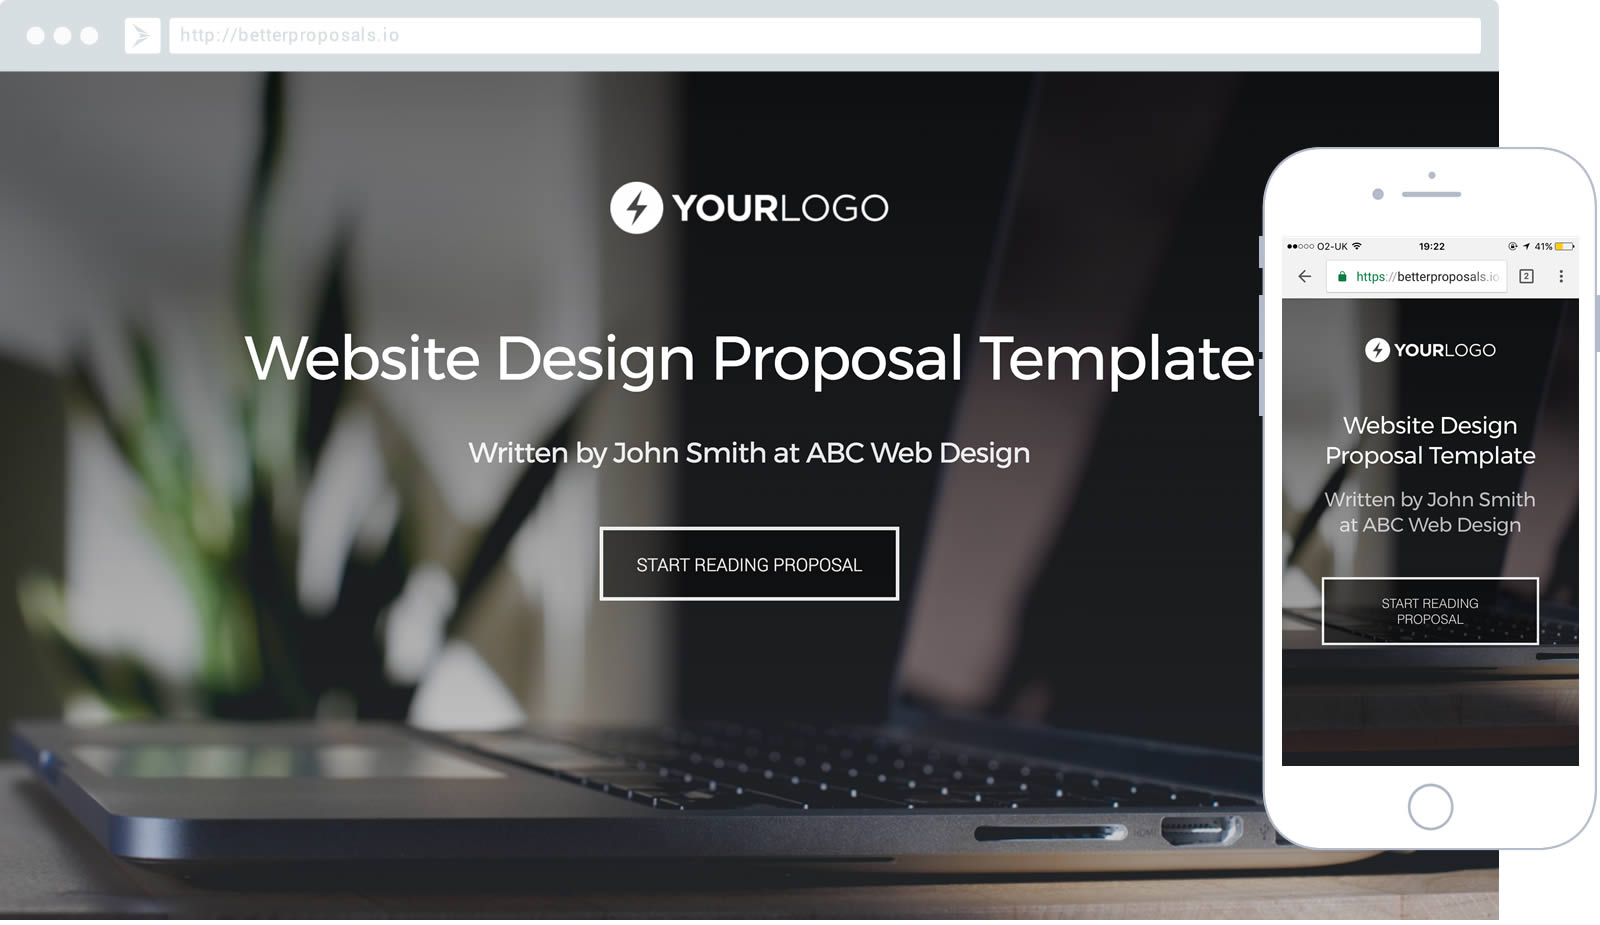 Website Design Proposal Template Proposal Template For Any Web Design Or  Development Company.